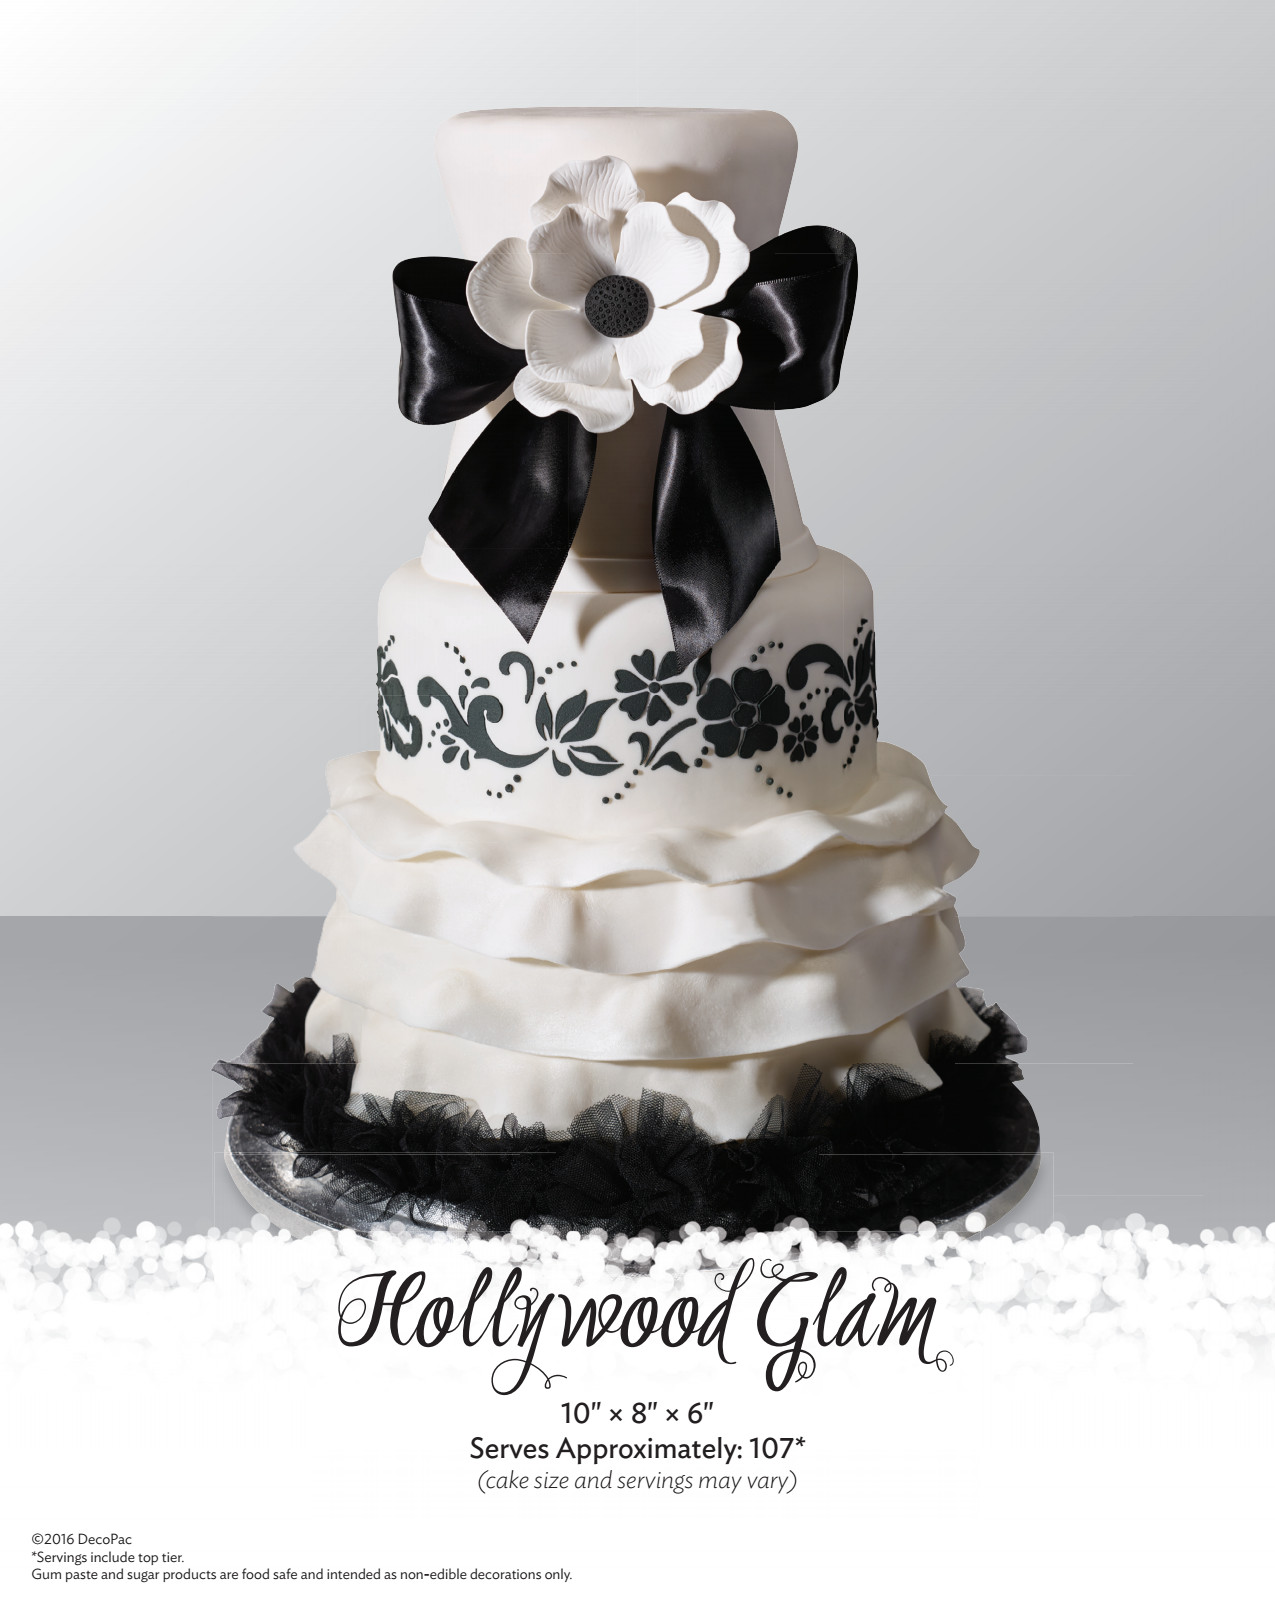 decopac wedding cakes glam wedding cake the magic of cakes 174 page 13371